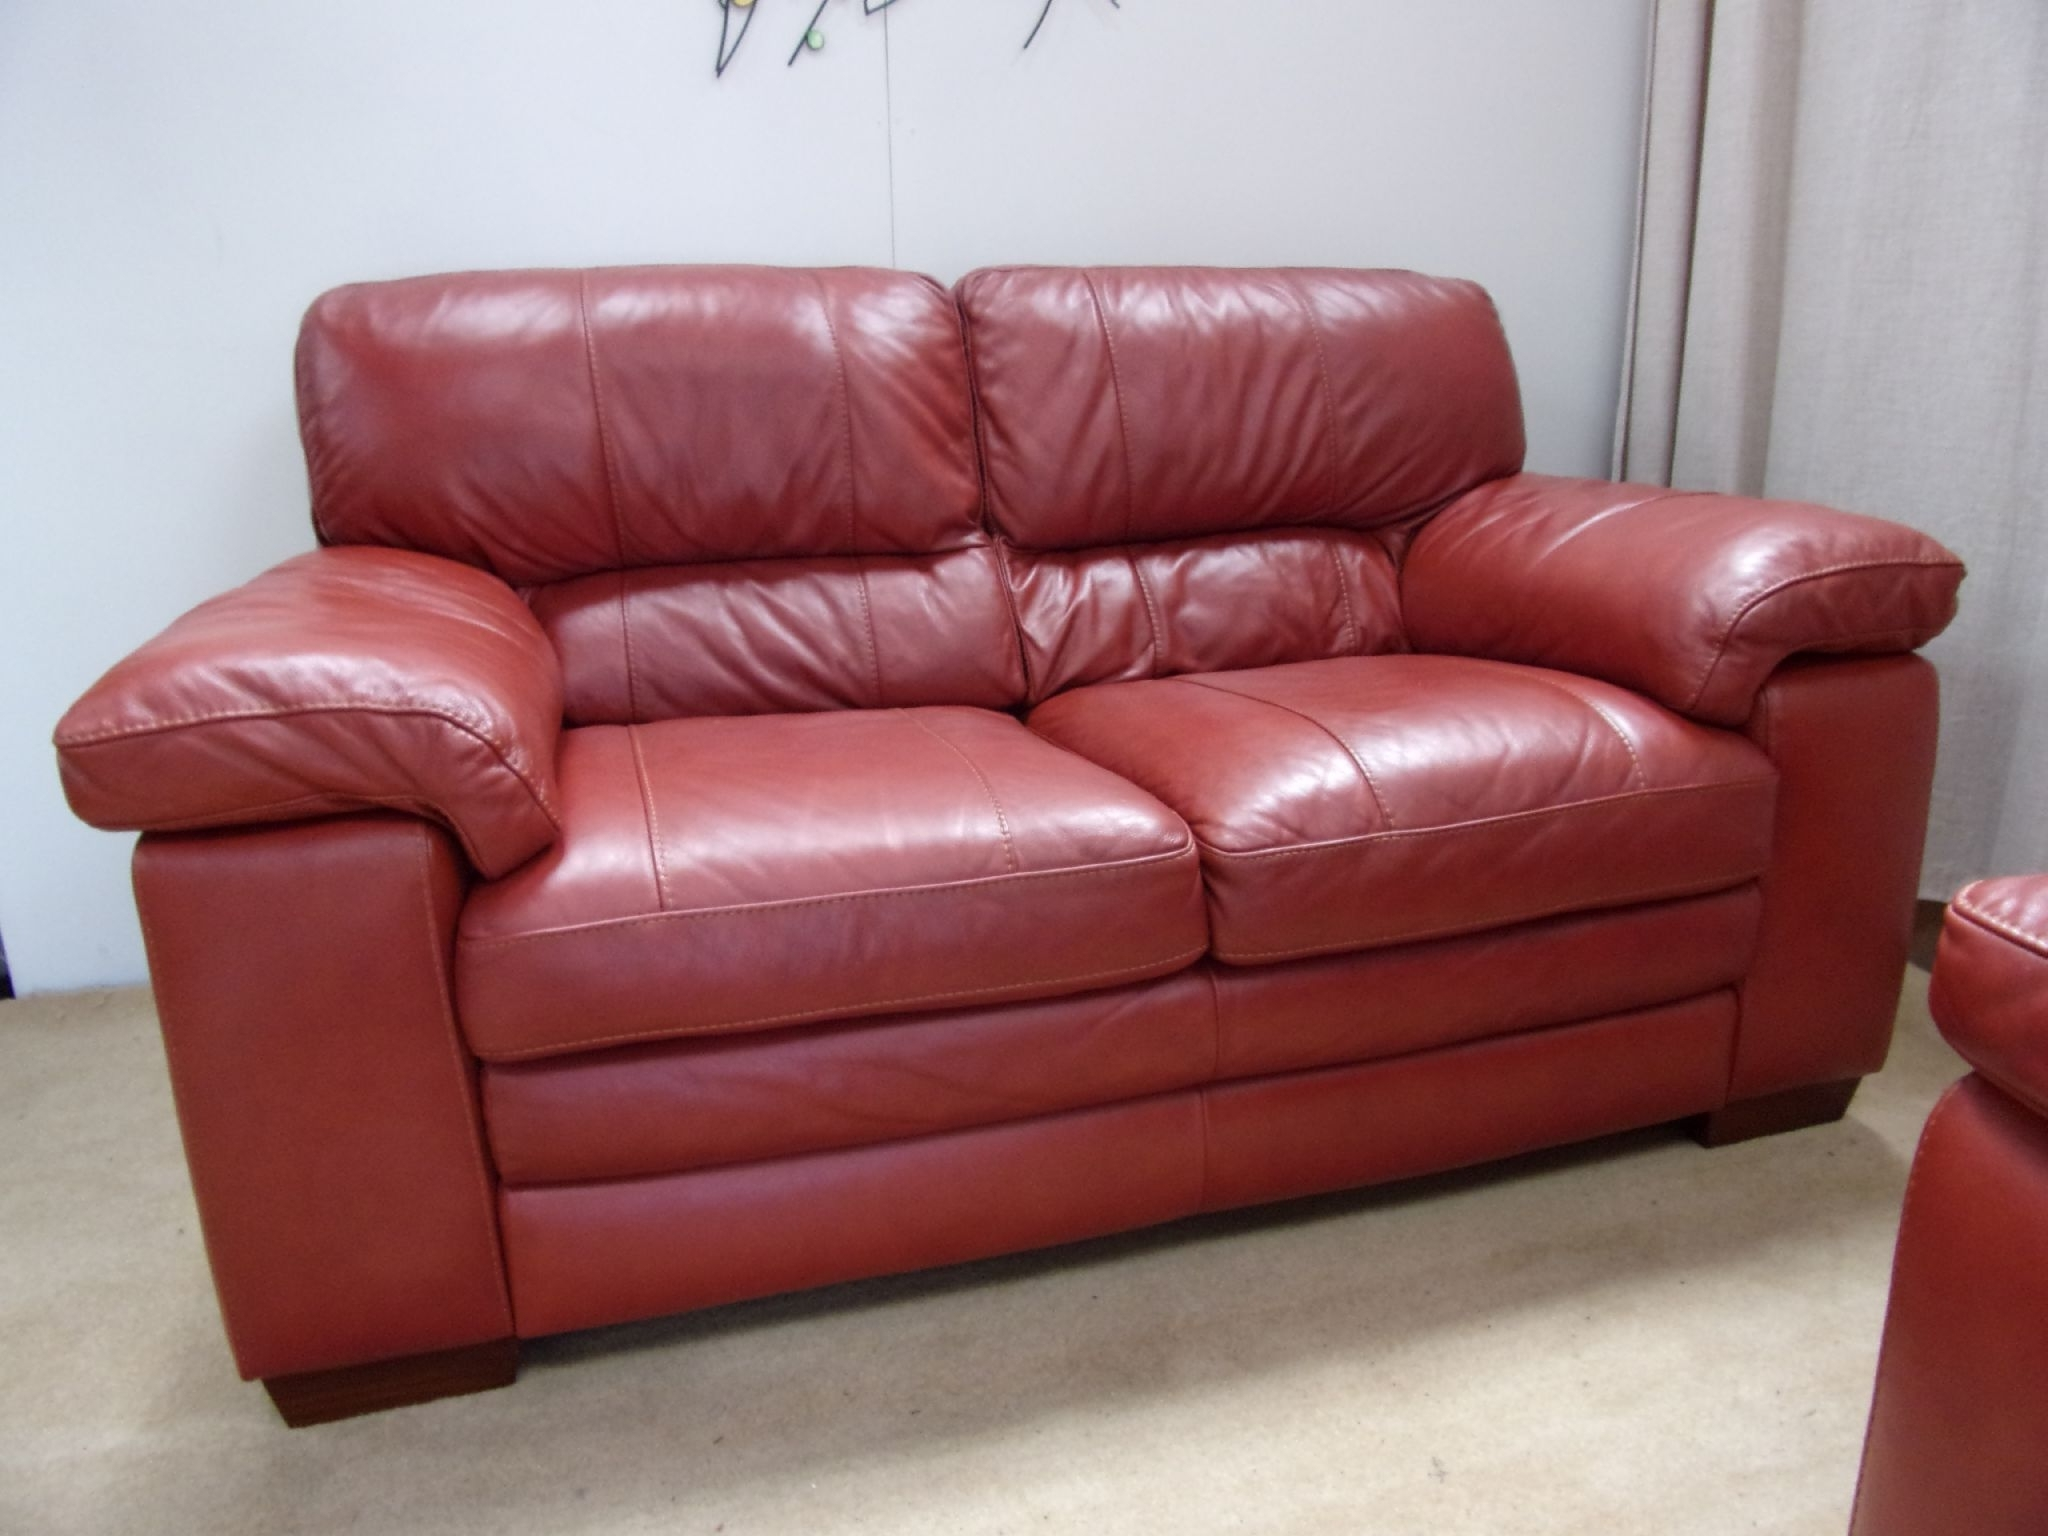 Red Leather Couches And Loveseats Throughout 2017 Sears Leather Sofa Sofas Red Gumtree Manchester Ireland Couch And (View 11 of 15)